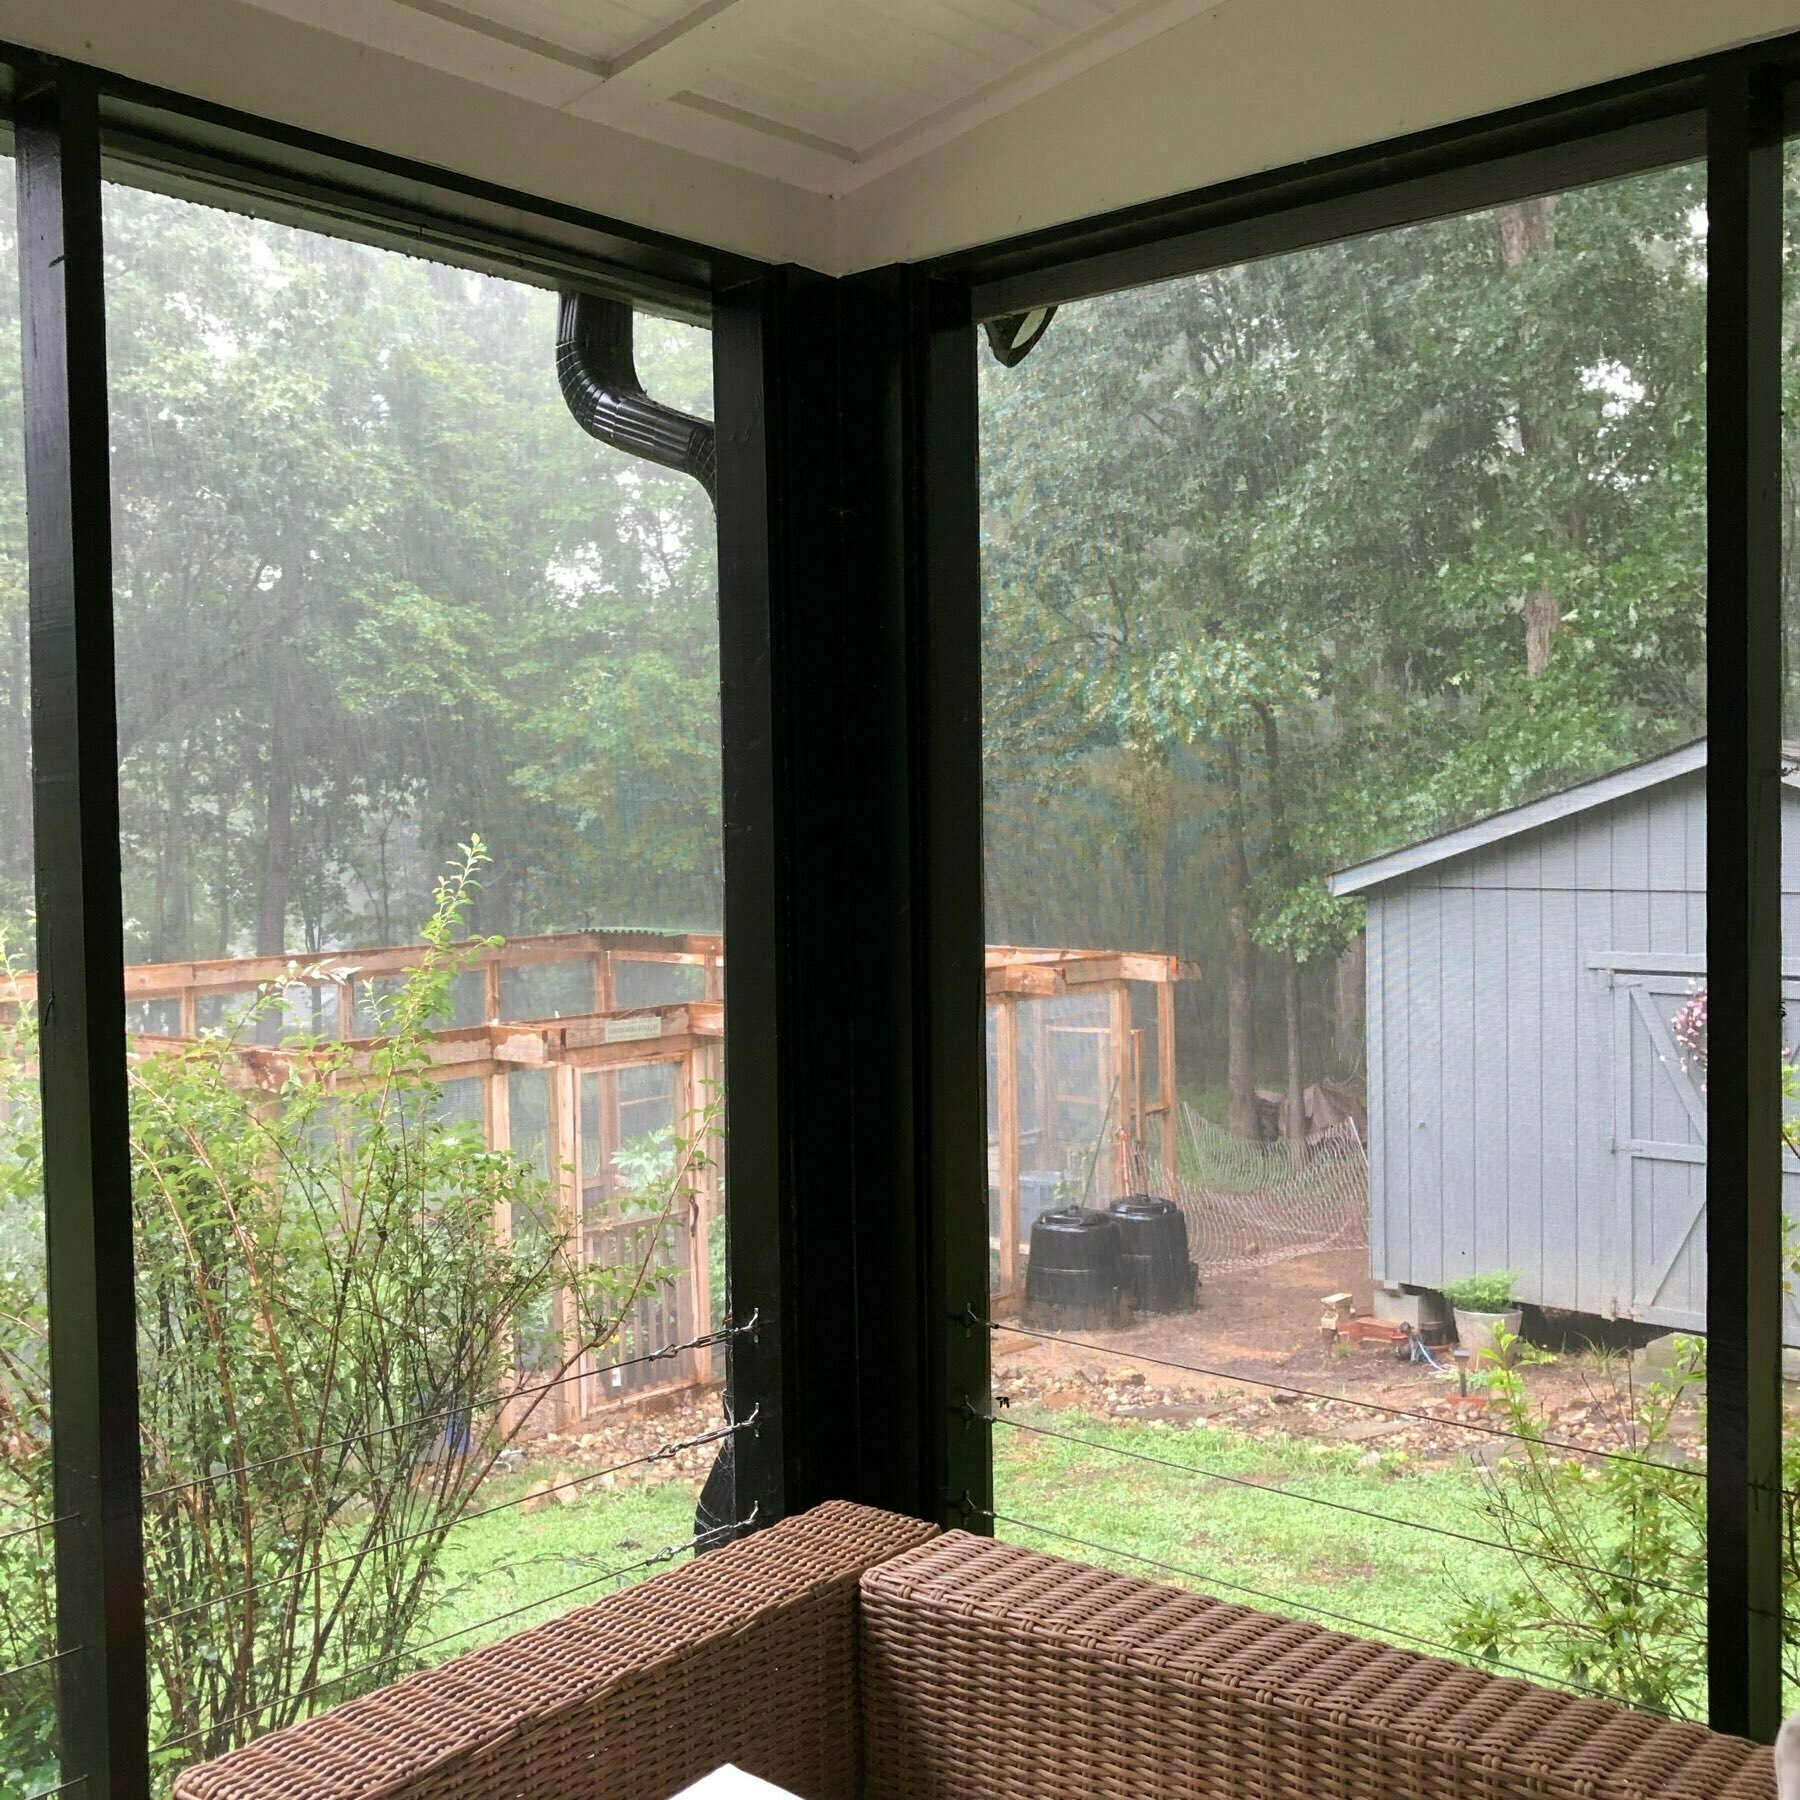 Rain storm from back porch